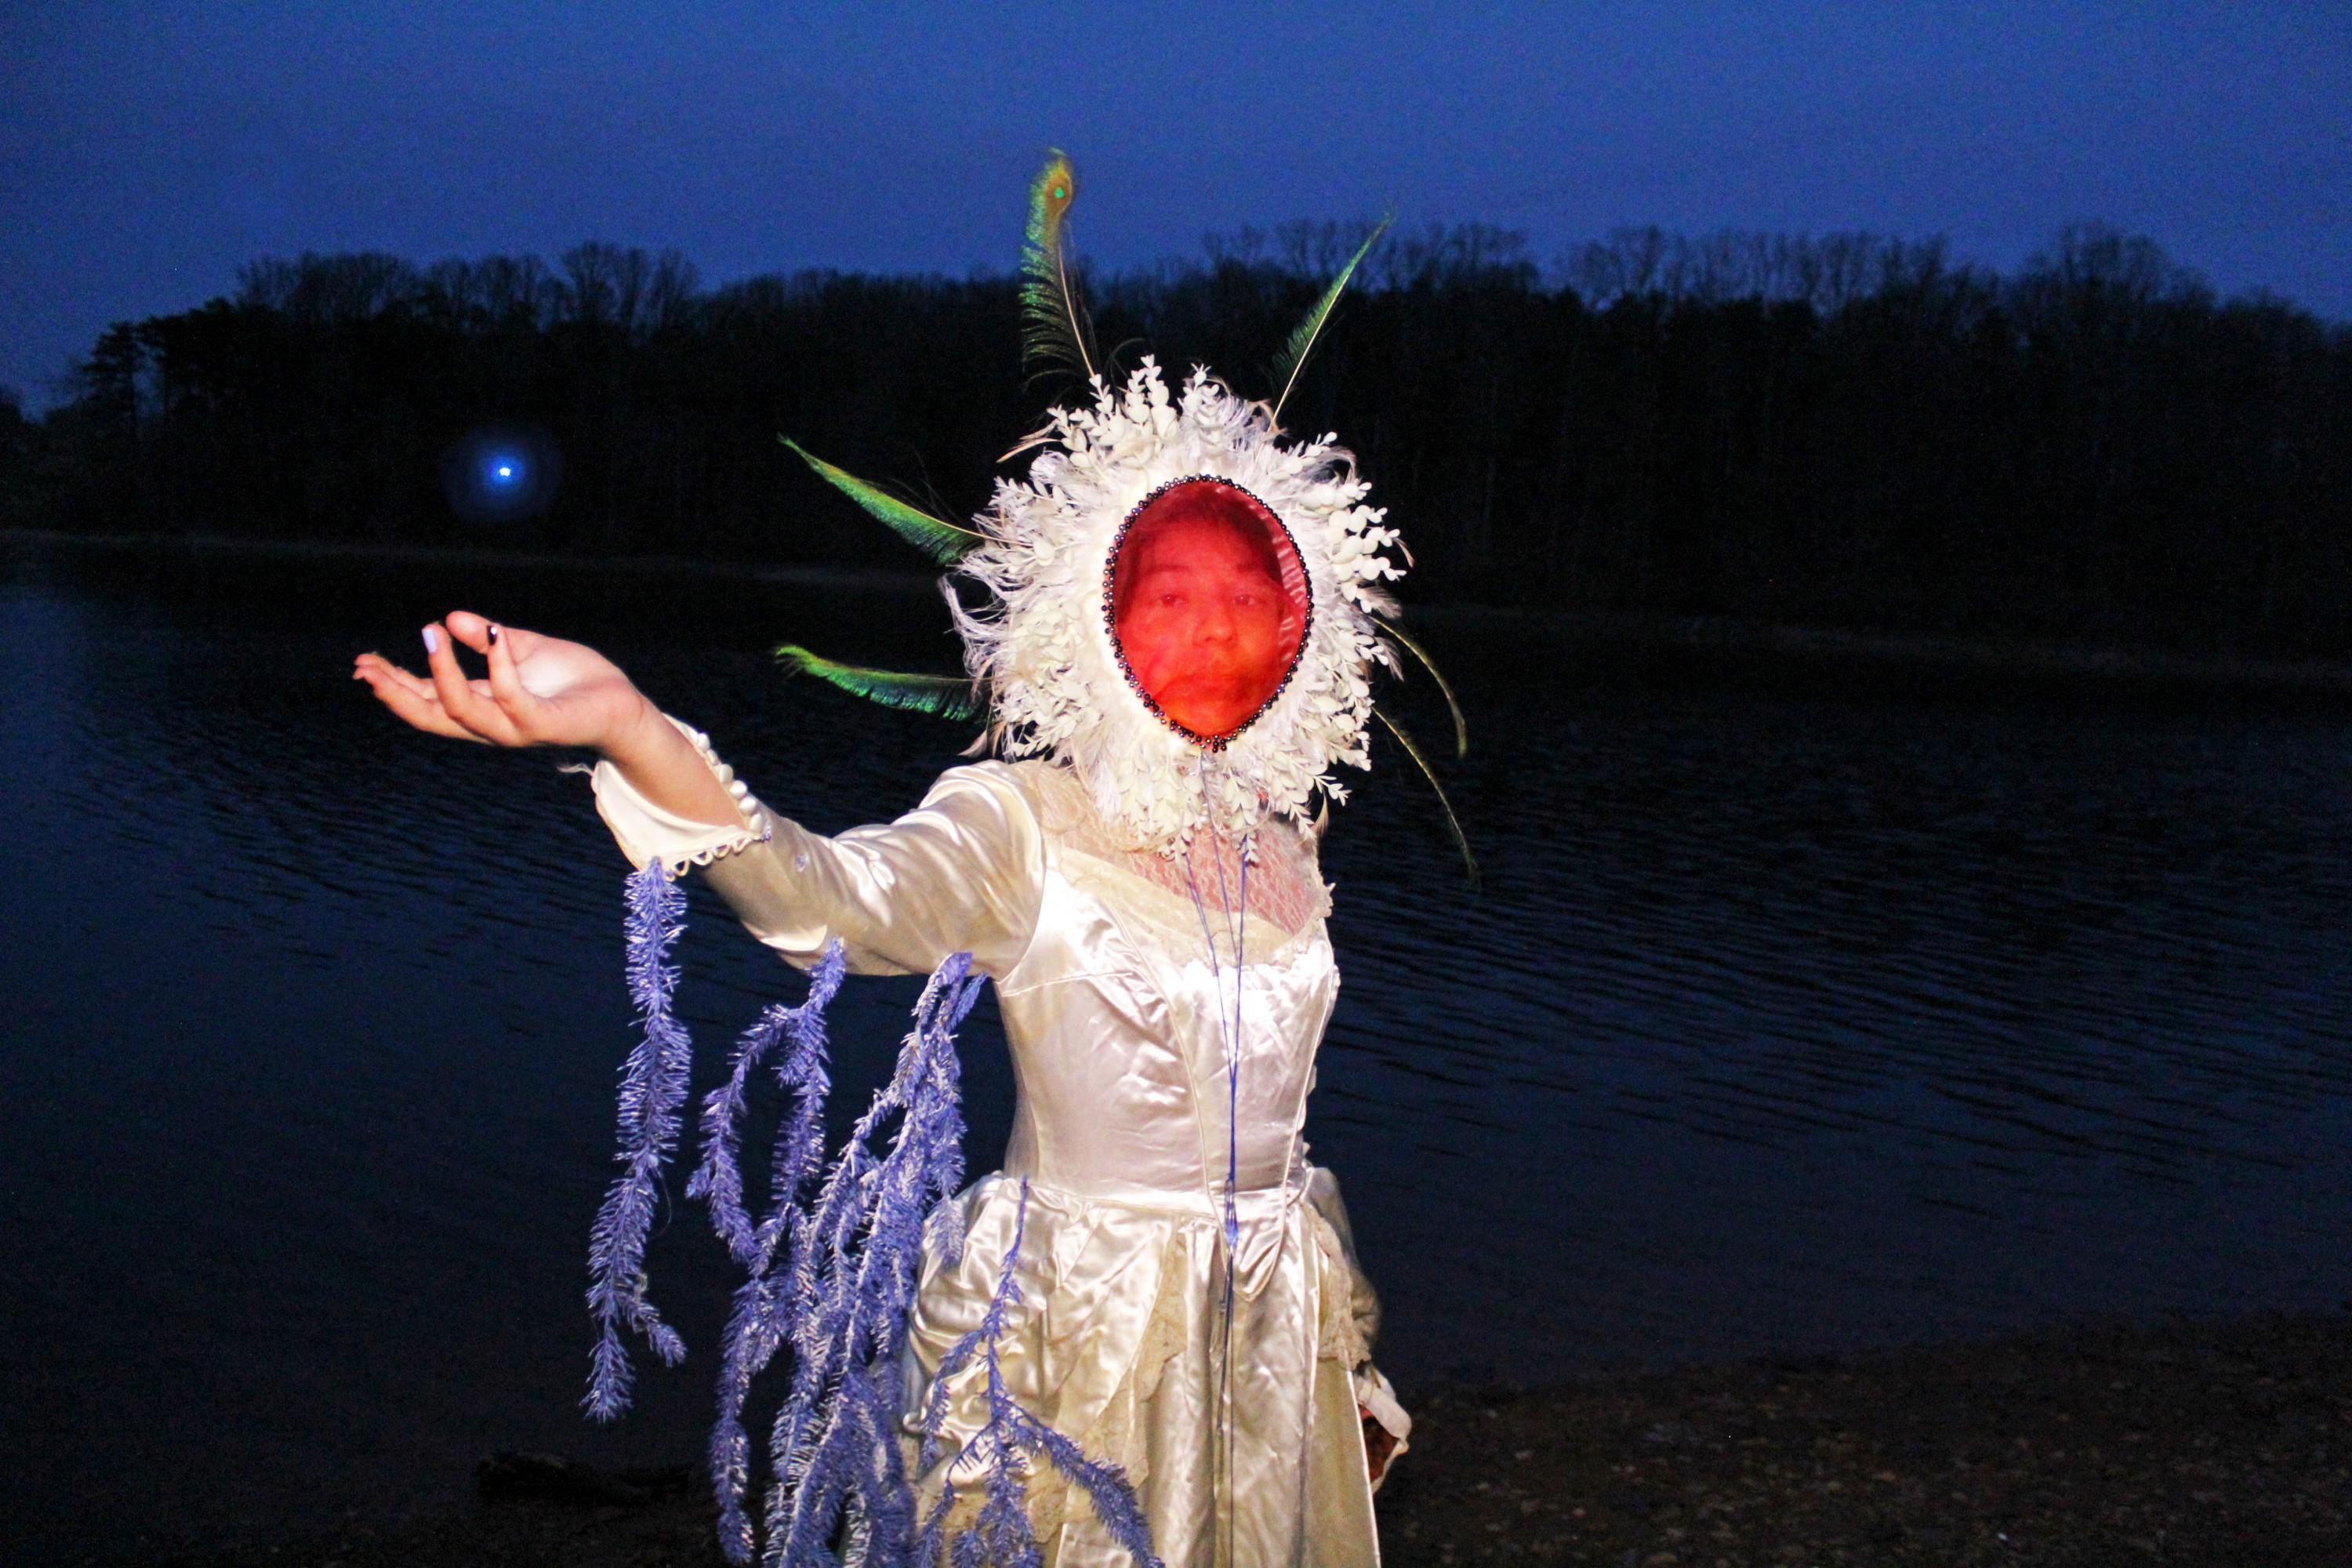 Person wearing a white wedding dress and holding an orb of light beside a river at night.